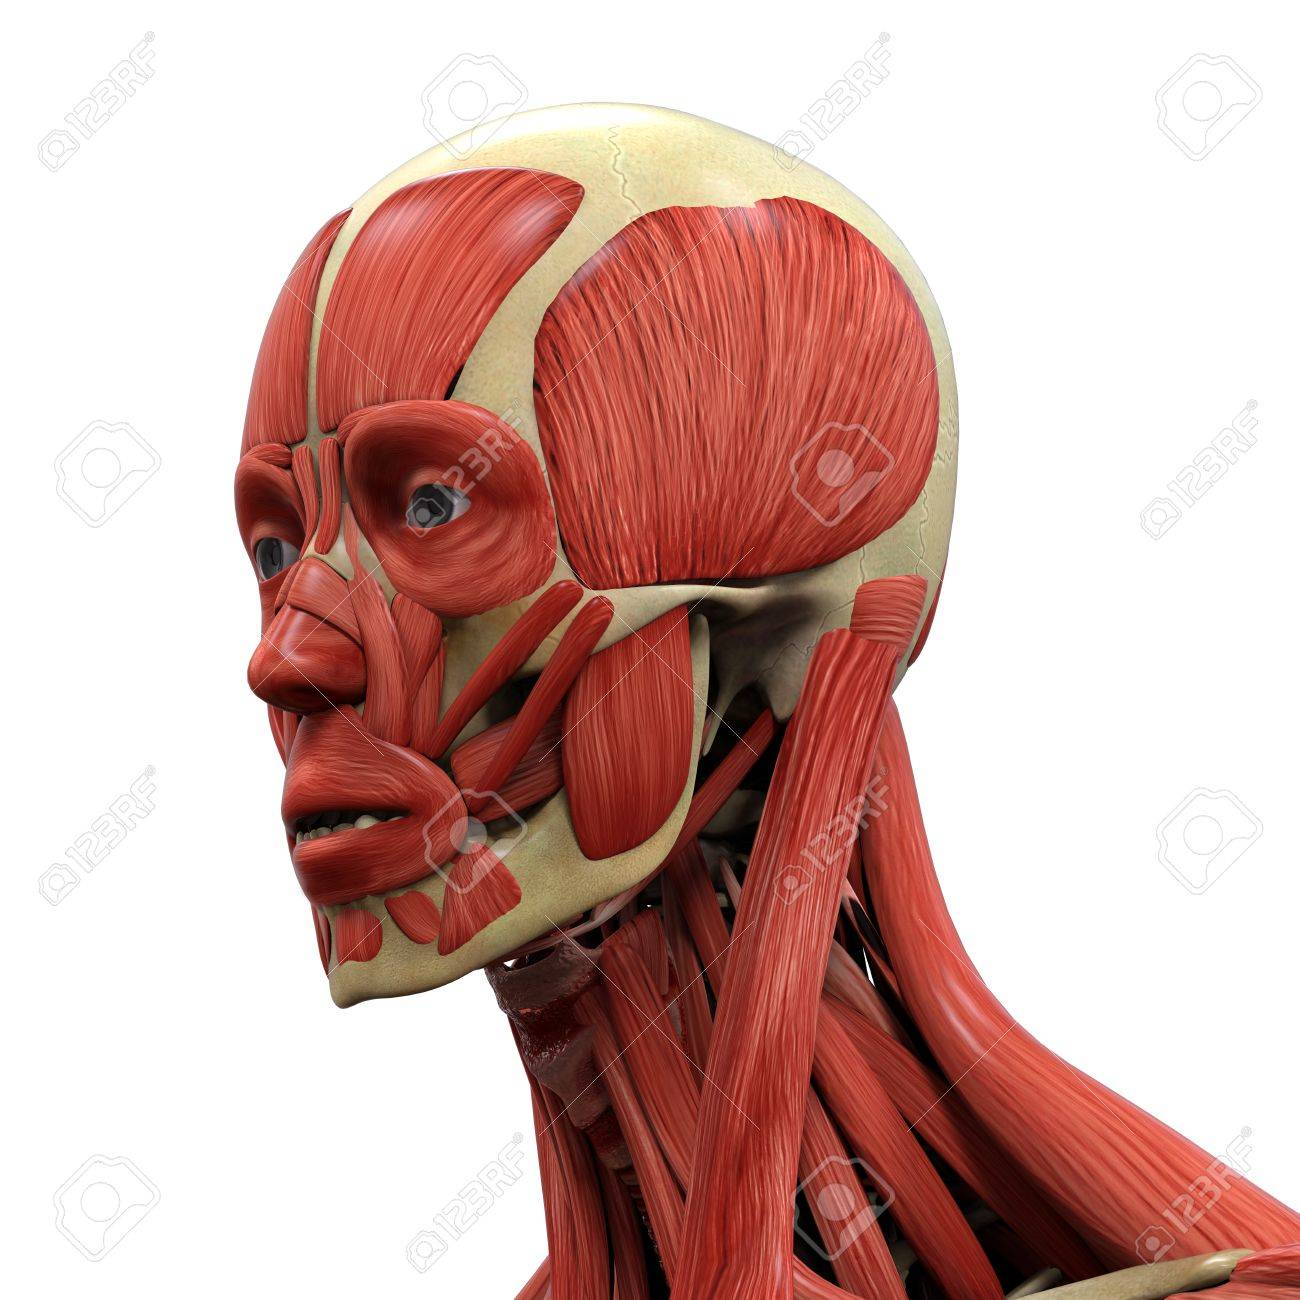 Human Face Anatomy Stock Photo, Picture And Royalty Free Image ...